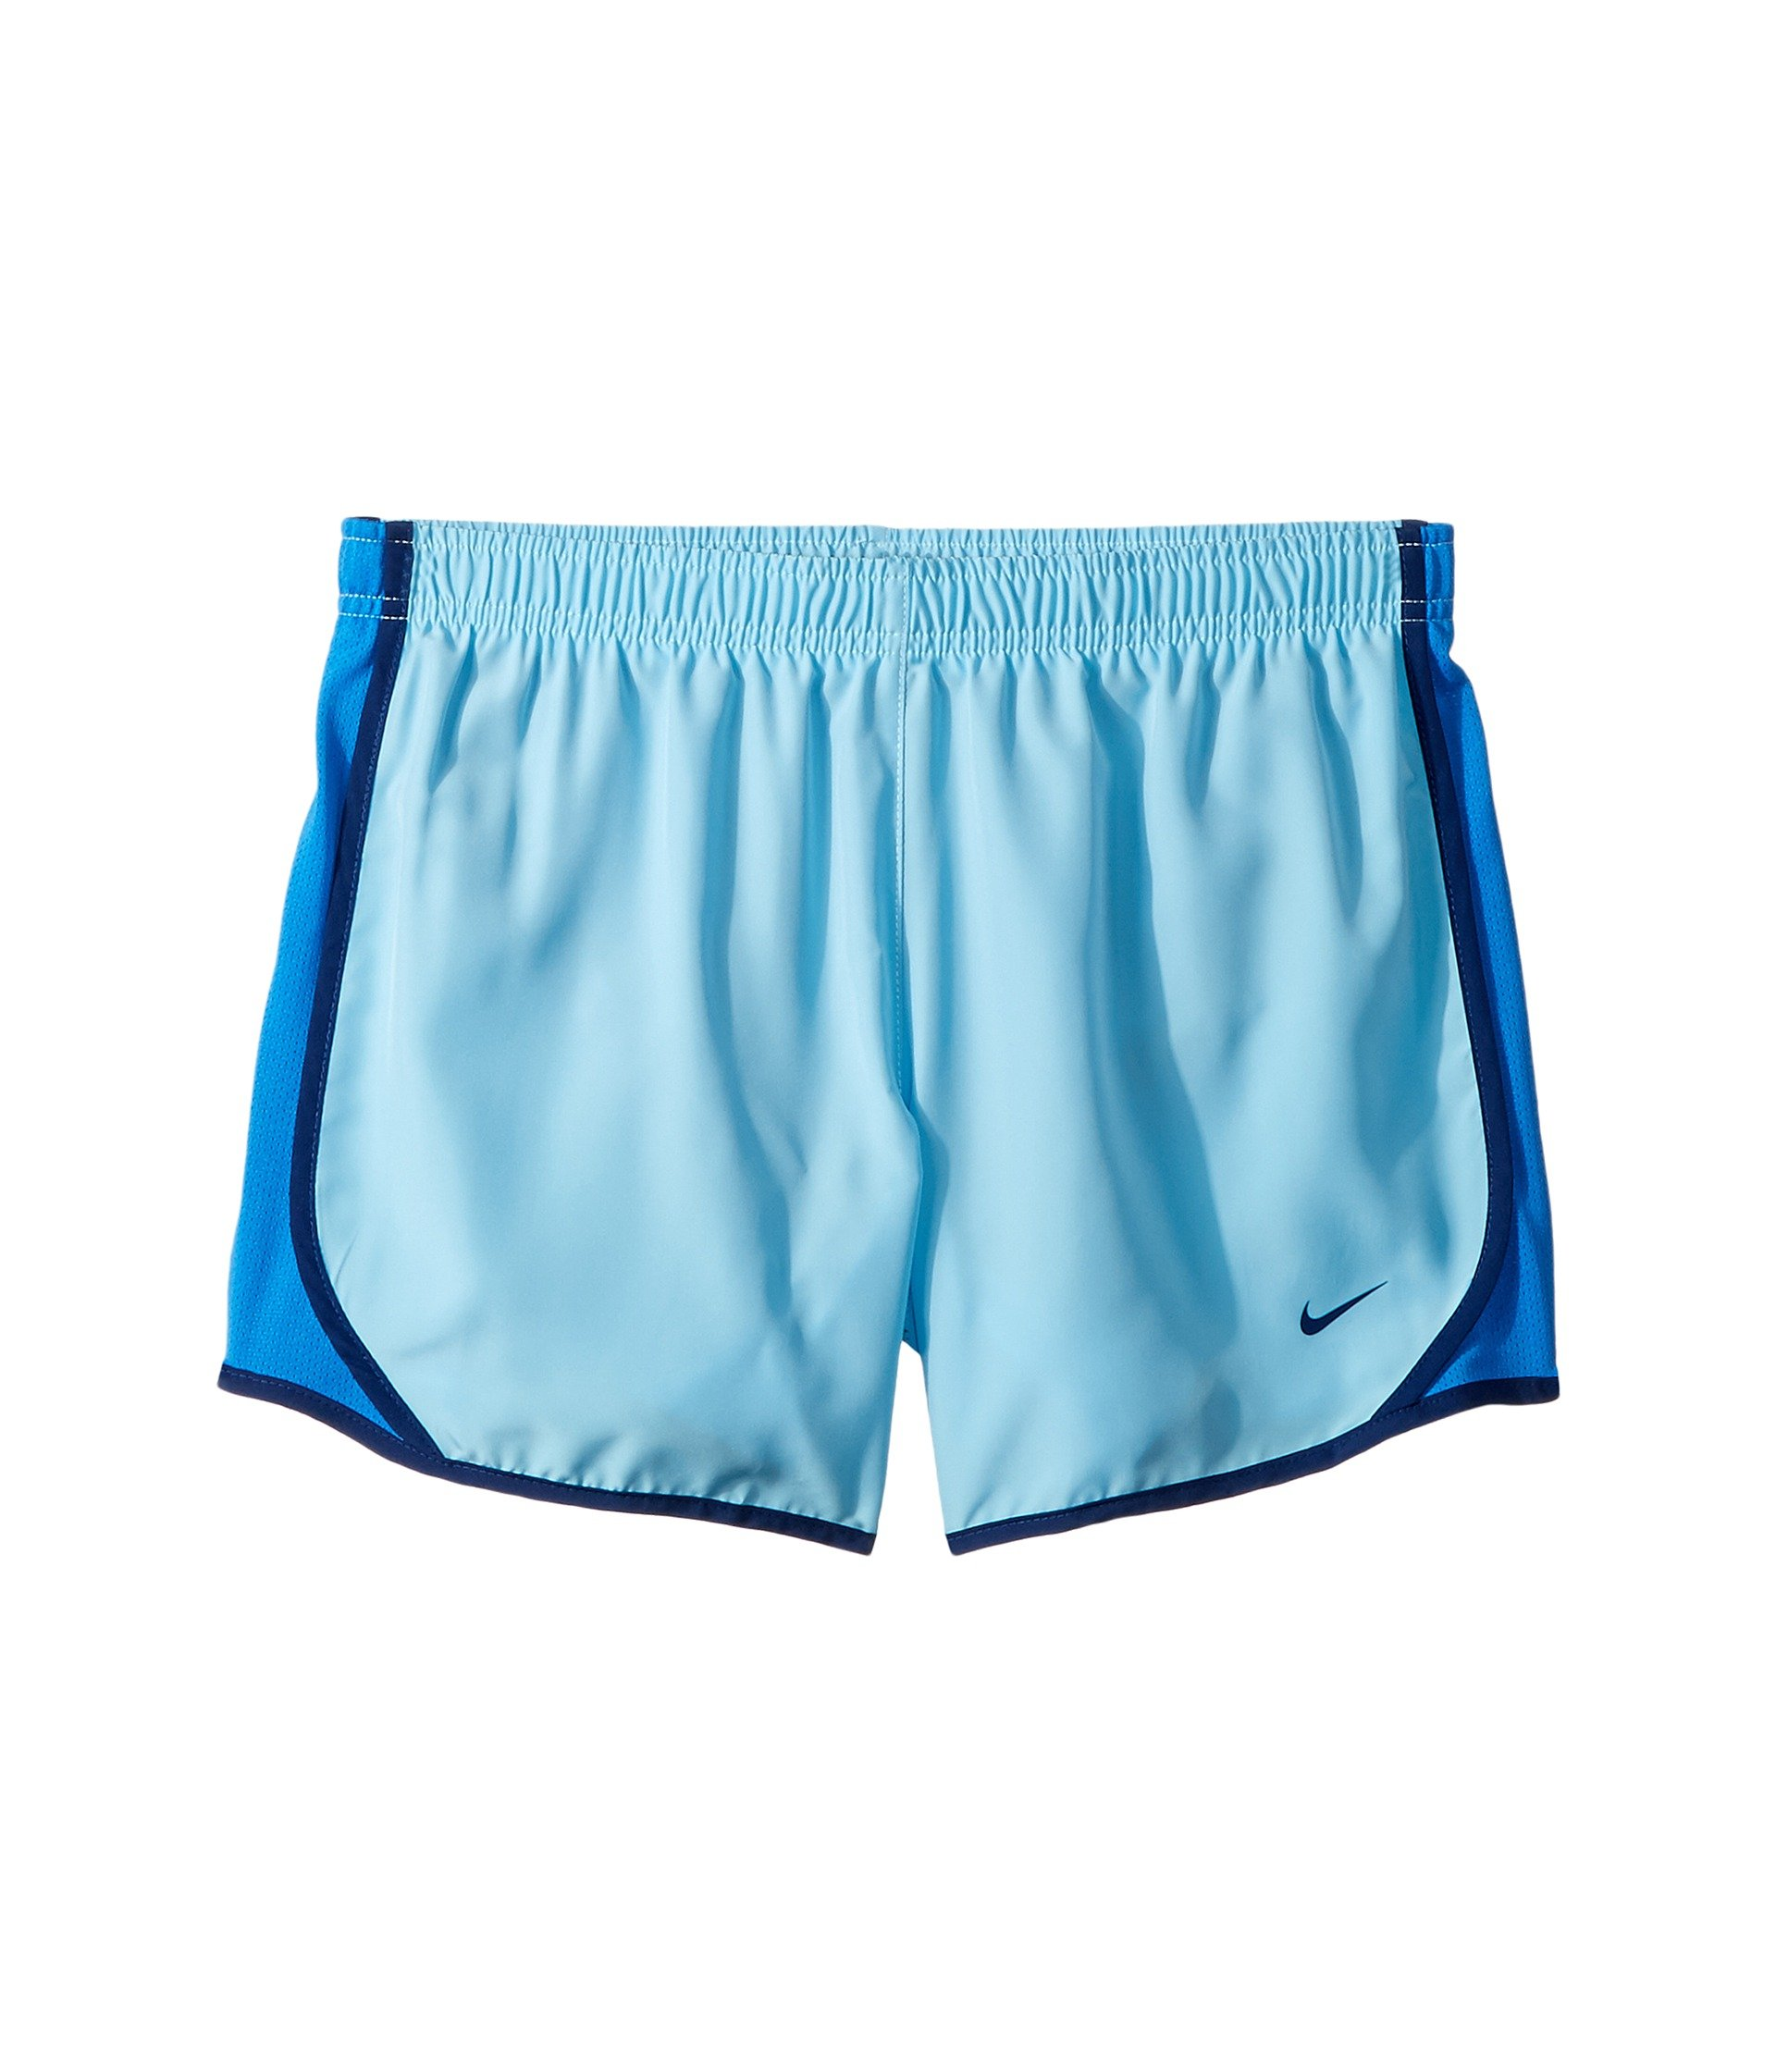 Nike Girl's Dry Tempo Running Shorts (Blue, X-Small) by Nike